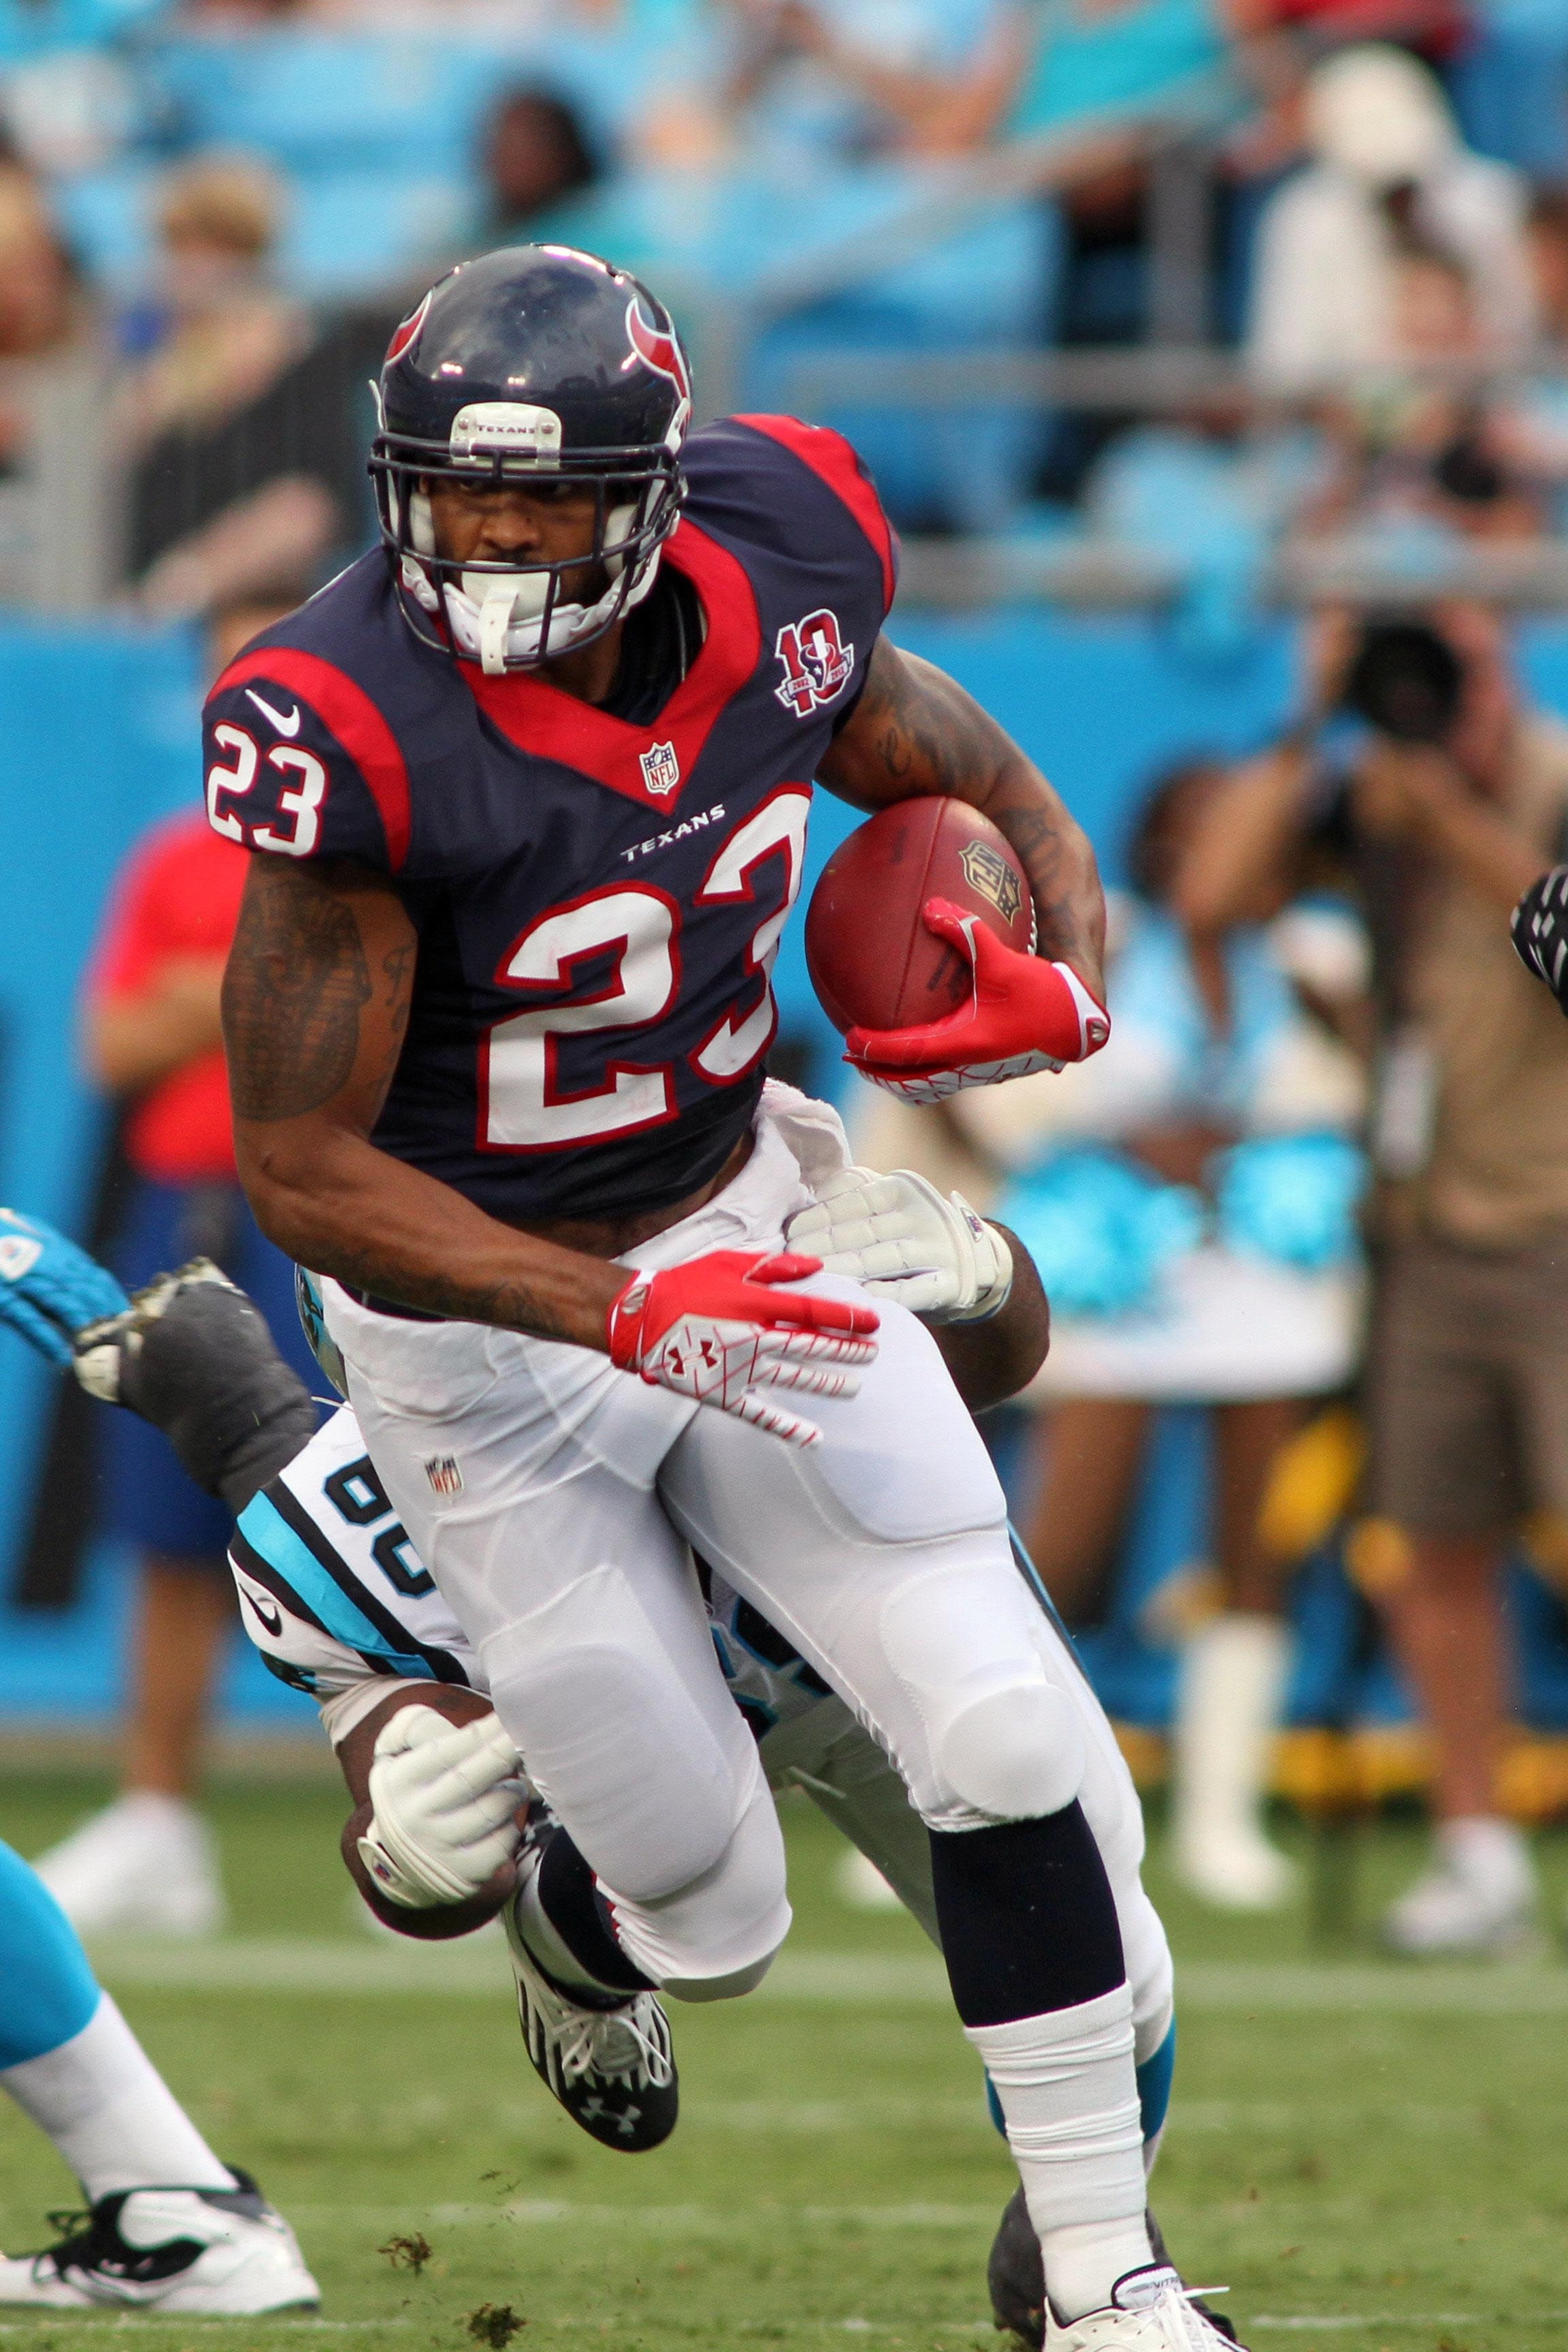 Arian Foster injury: Texans RB out for season with lumbar issue